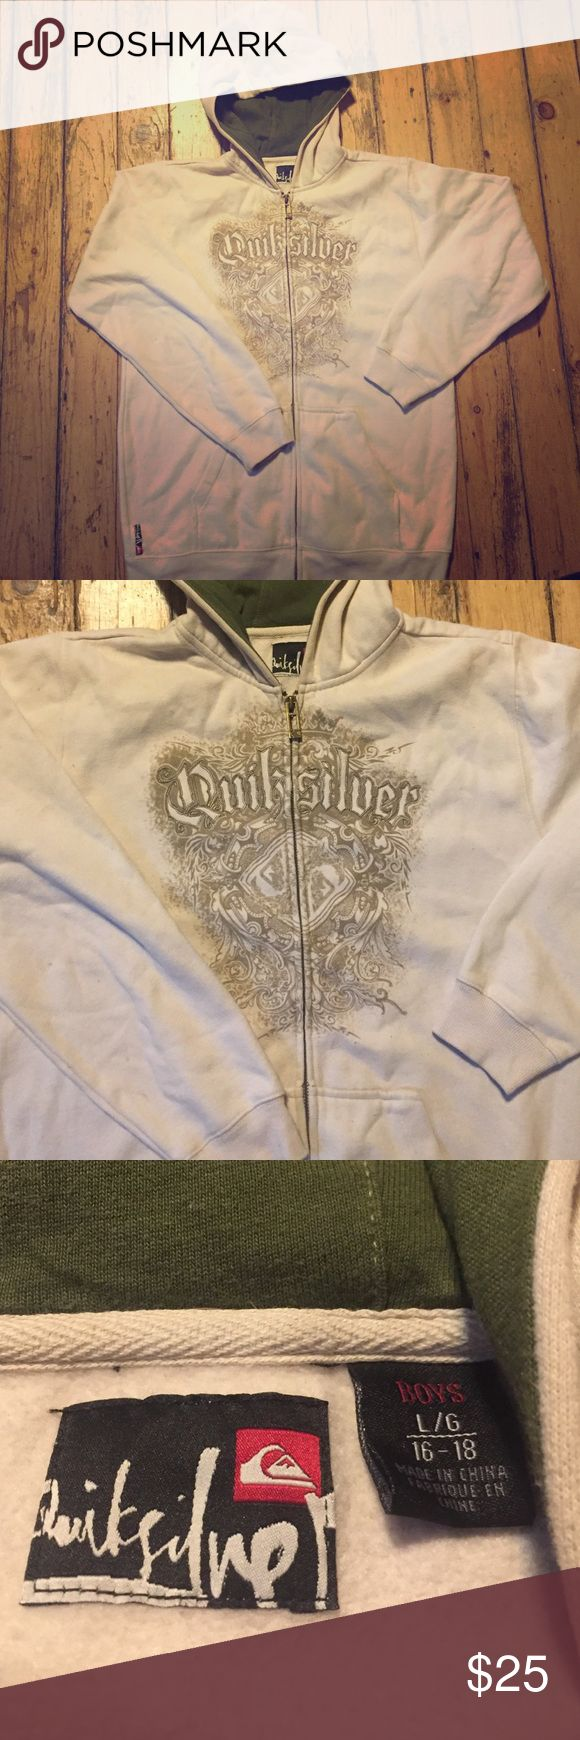 NWOT Quicksilver zip up hoodie. NWOT boys LG zip up hoodie metal zipper. Quicksilver Shirts & Tops Sweatshirts & Hoodies